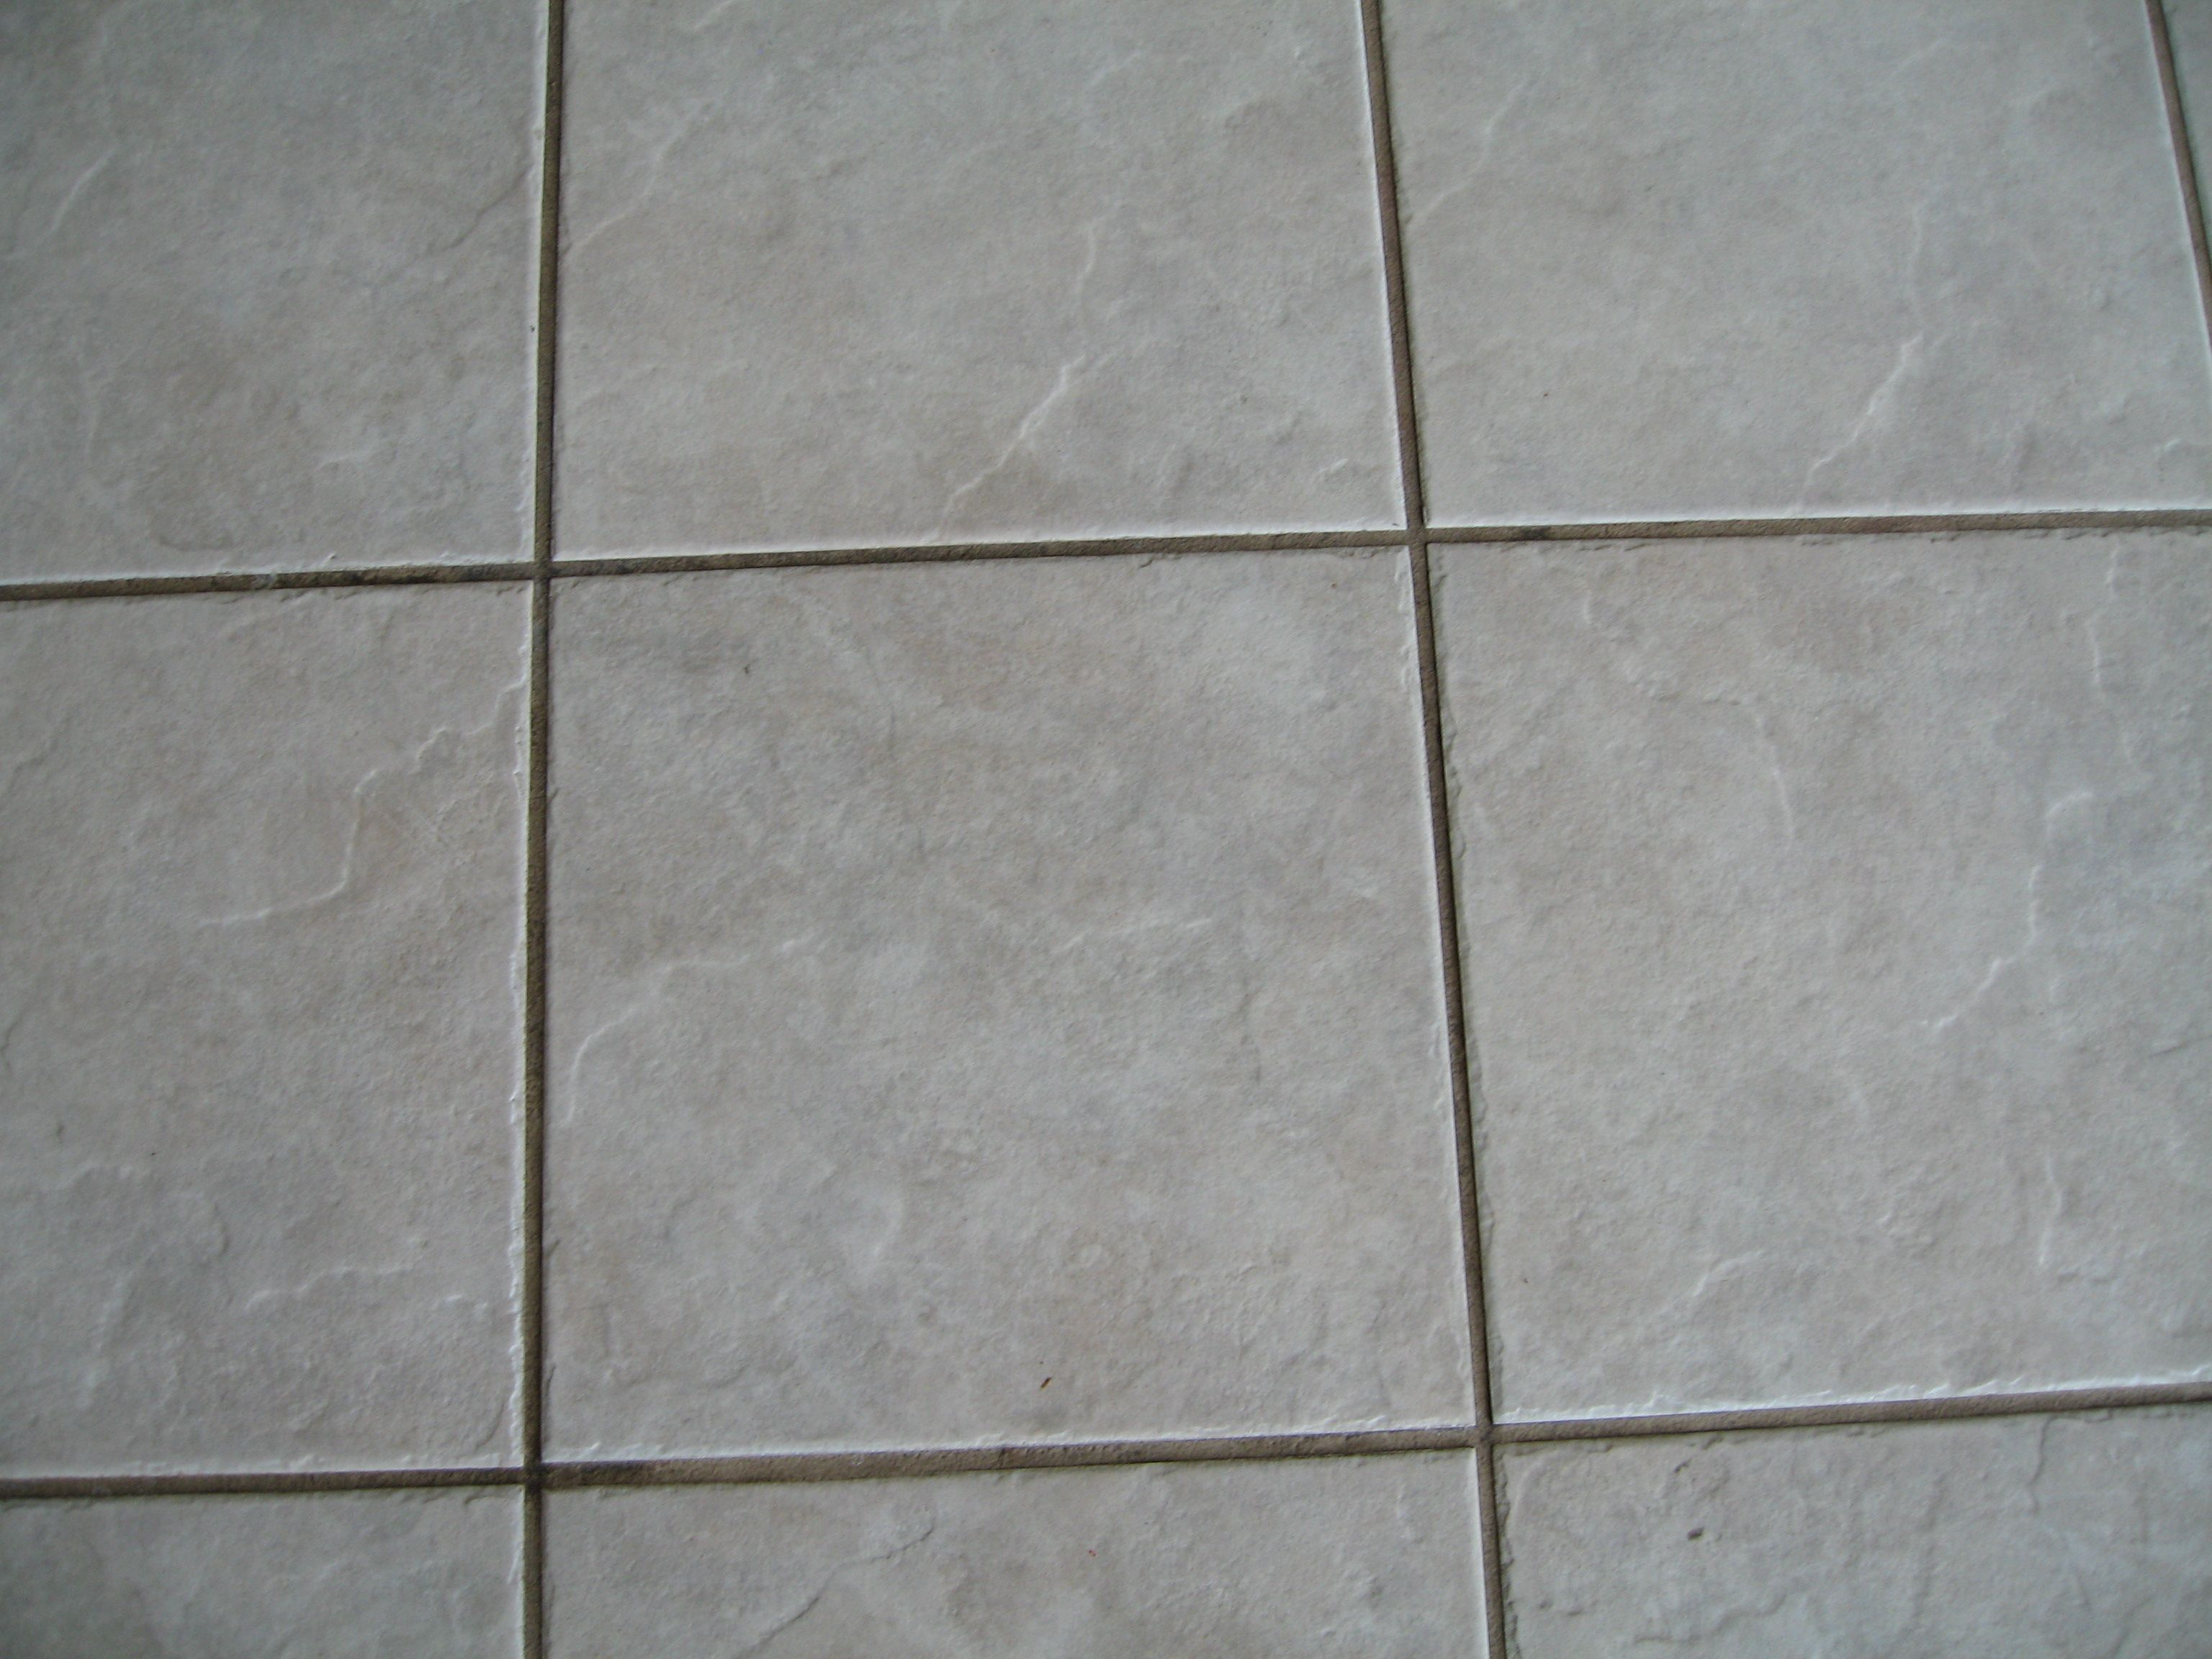 Sealing grout on tile floors images tile flooring design ideas heavily soiled grout tile and grout cleaning sealing color heavily soiled grout grout cleaningtile doublecrazyfo images dailygadgetfo Images